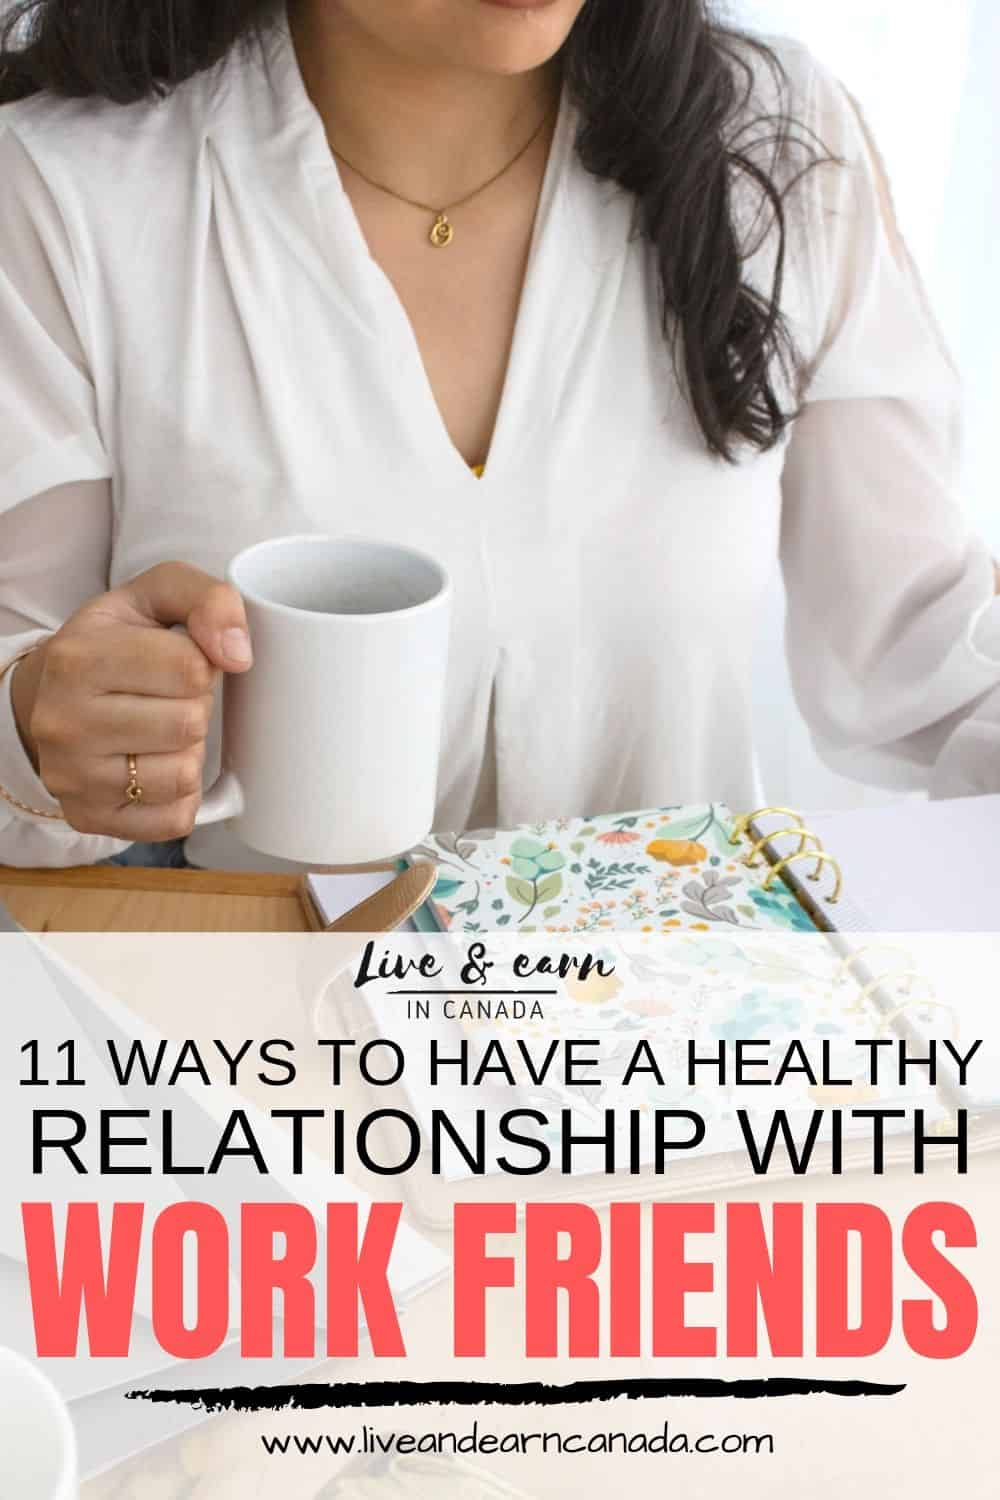 Work friends, here are tips on how to keep a healthy relationship with your coworkers. Make friends with your co workers using these tips #workfriends